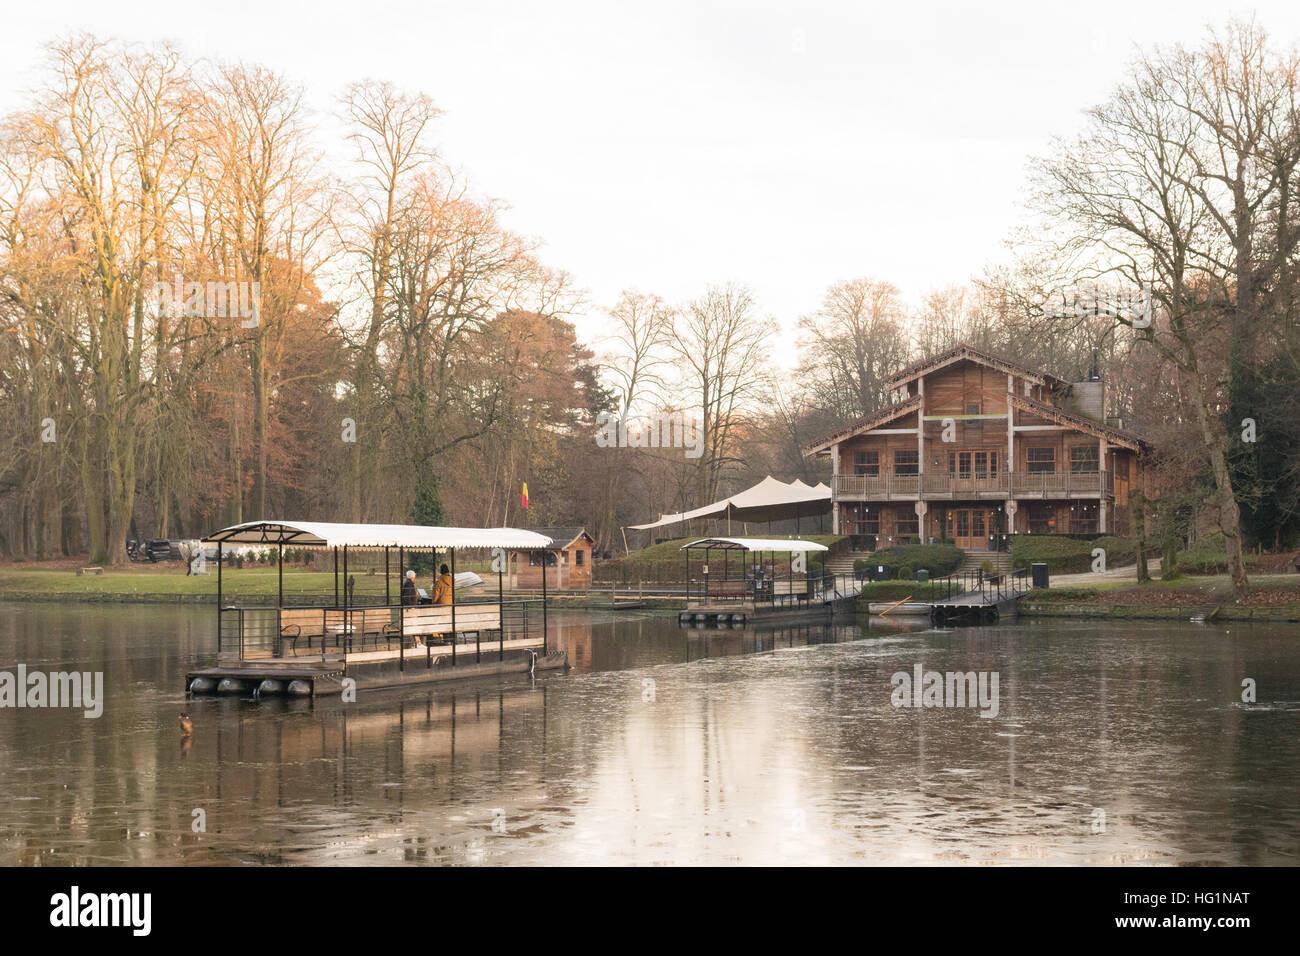 boat crossing over to Chalet Robinson, island restaurant on Bois de la Cambre in the Sonian Forest, Brussels, Belgium - Stock Image